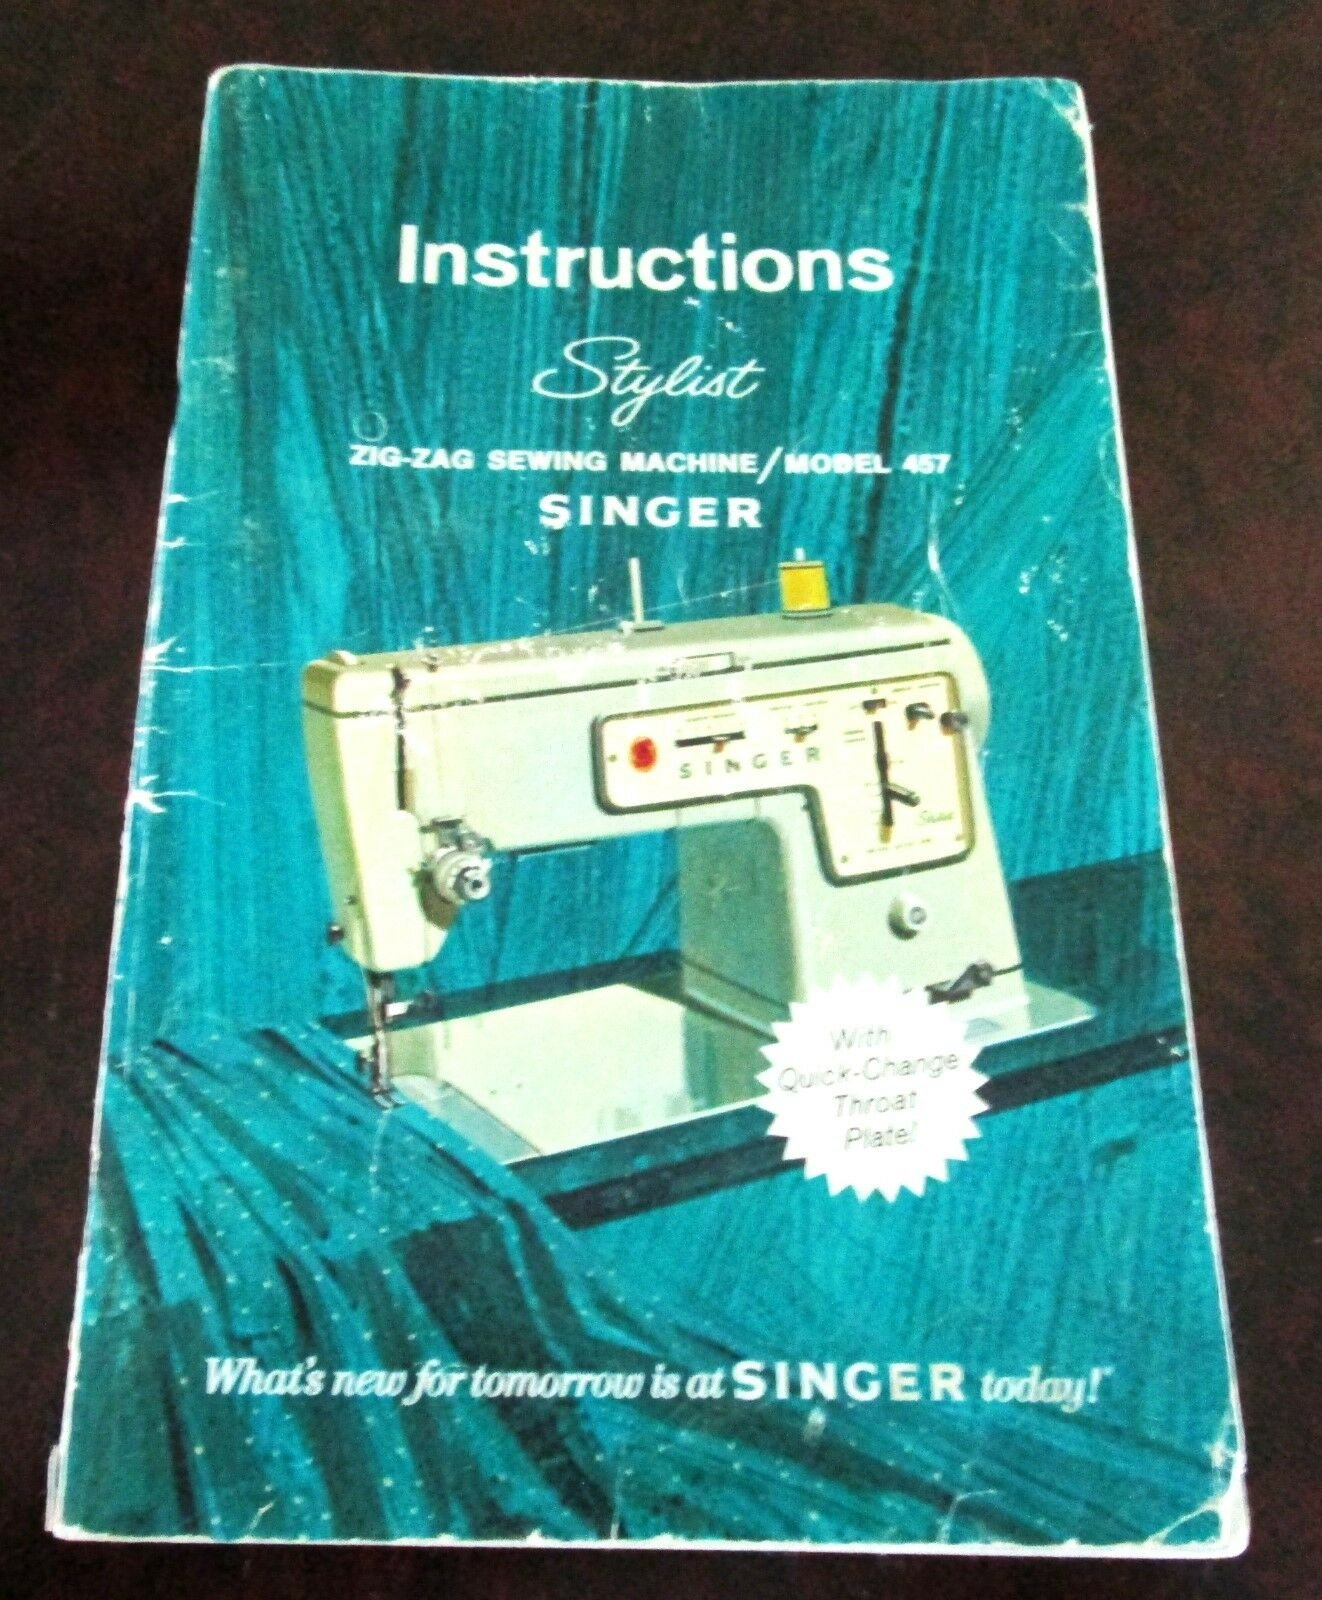 Singer model 457 manual sewing machine use care attachments 62pg.